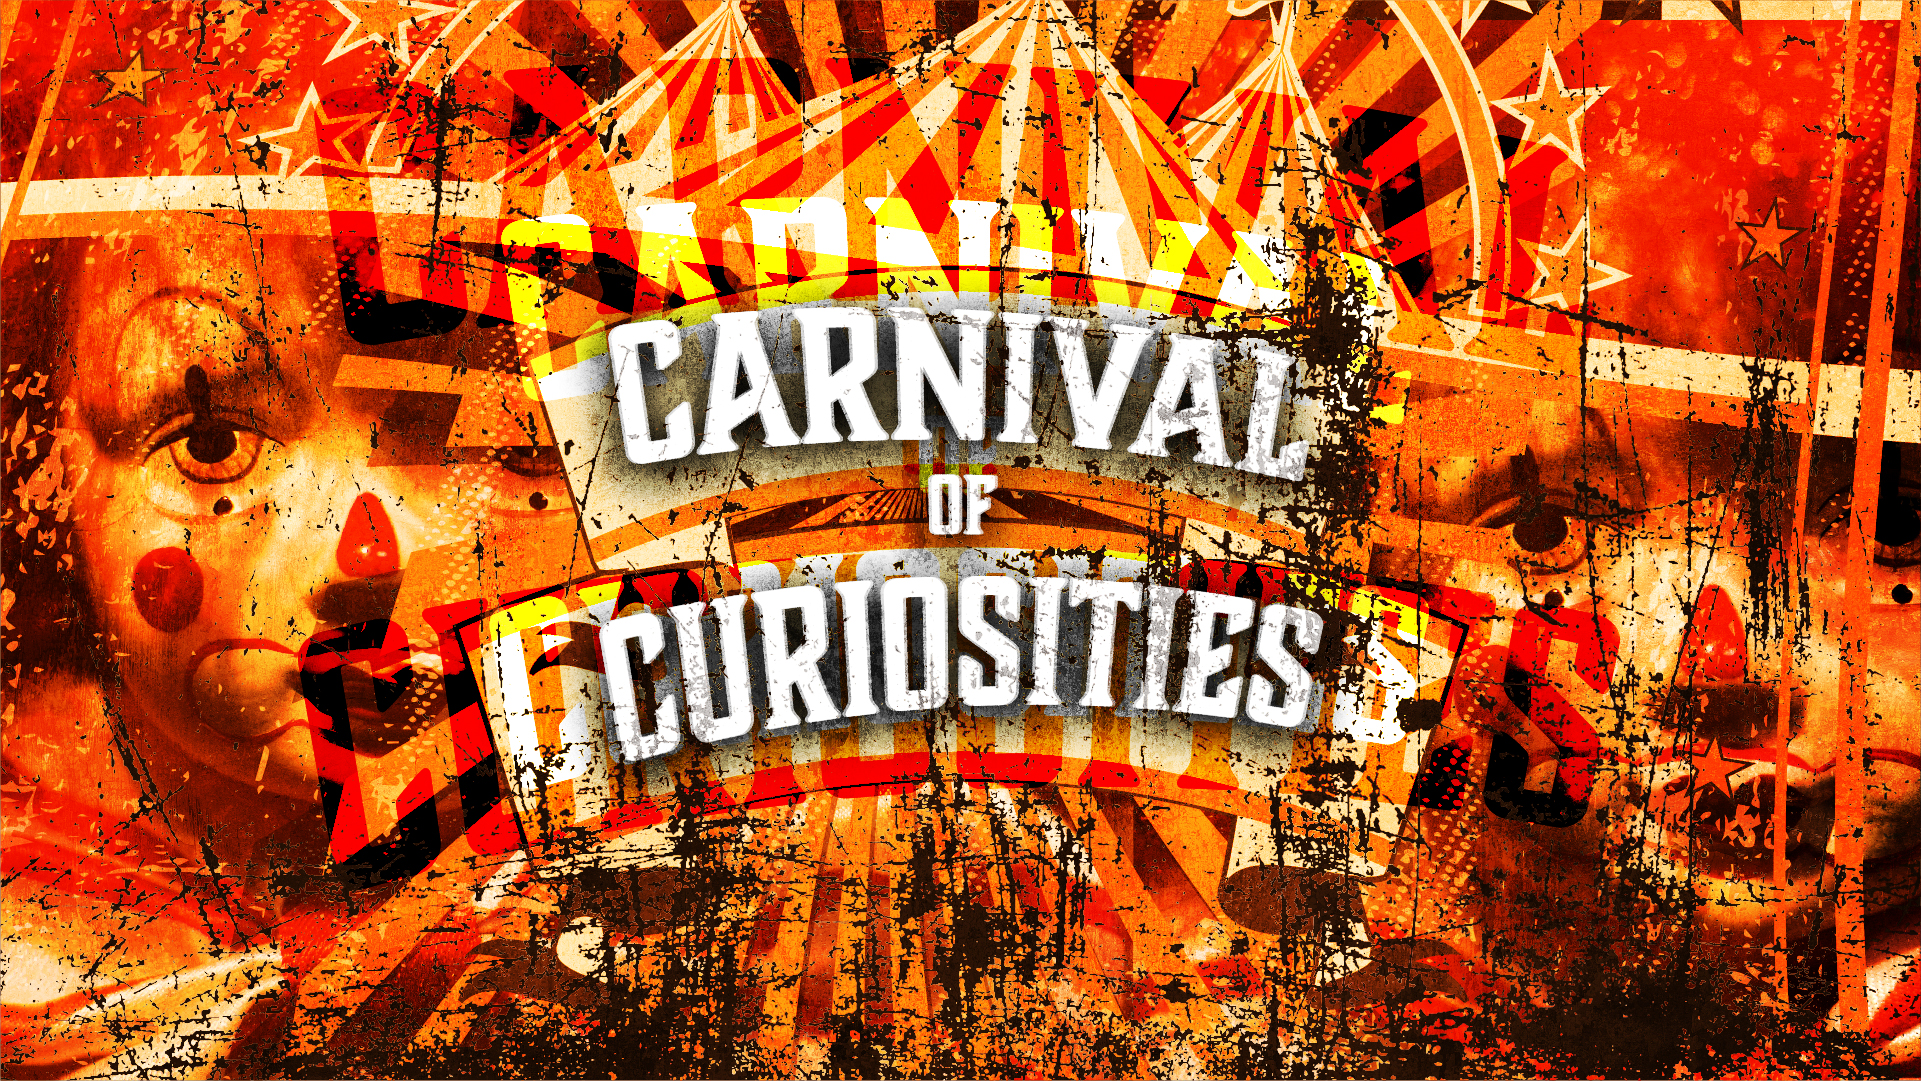 Carnival of Curiosities - AVAILABLE AT HAYMARKET:Welcome to the Carnival of Curiosities, prepare to have your mind blown by the amazing displays within the carnival. However what started out as a game is clearly more sinister than you expected. Your must defeat the challenges within an hour or become part of the carnival forever.